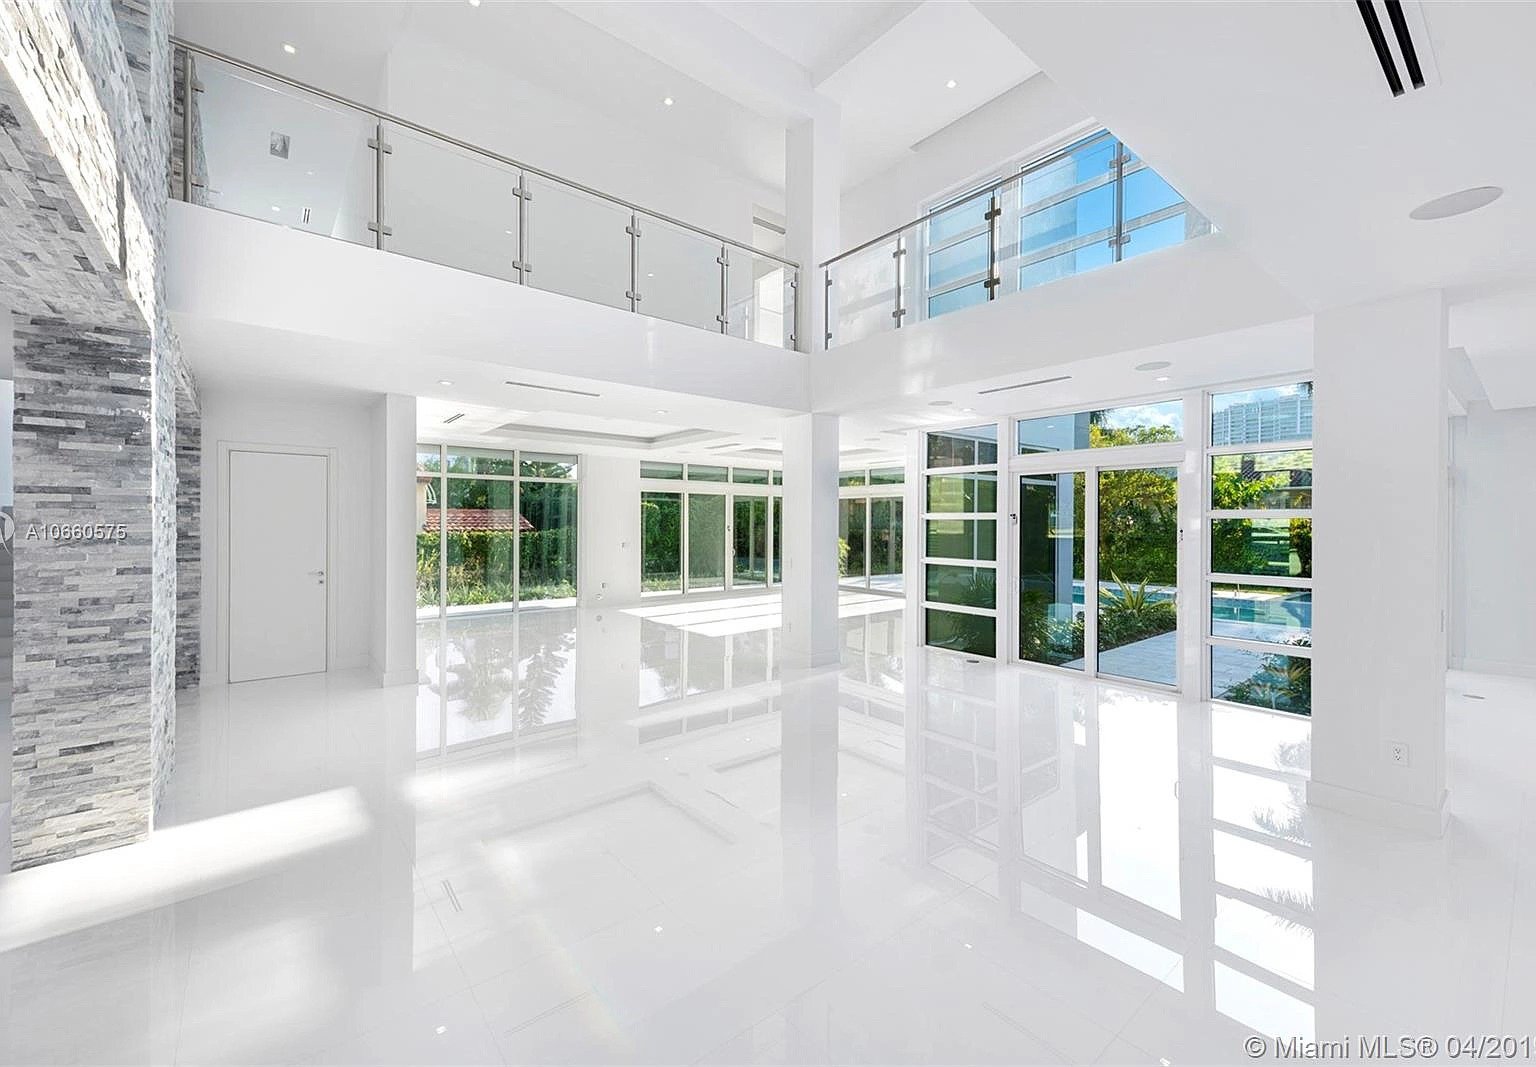 266 Ocean Blvd, Golden Beach, FL 33160 - $5,500,000 home for sale, house images, photos and pics gallery